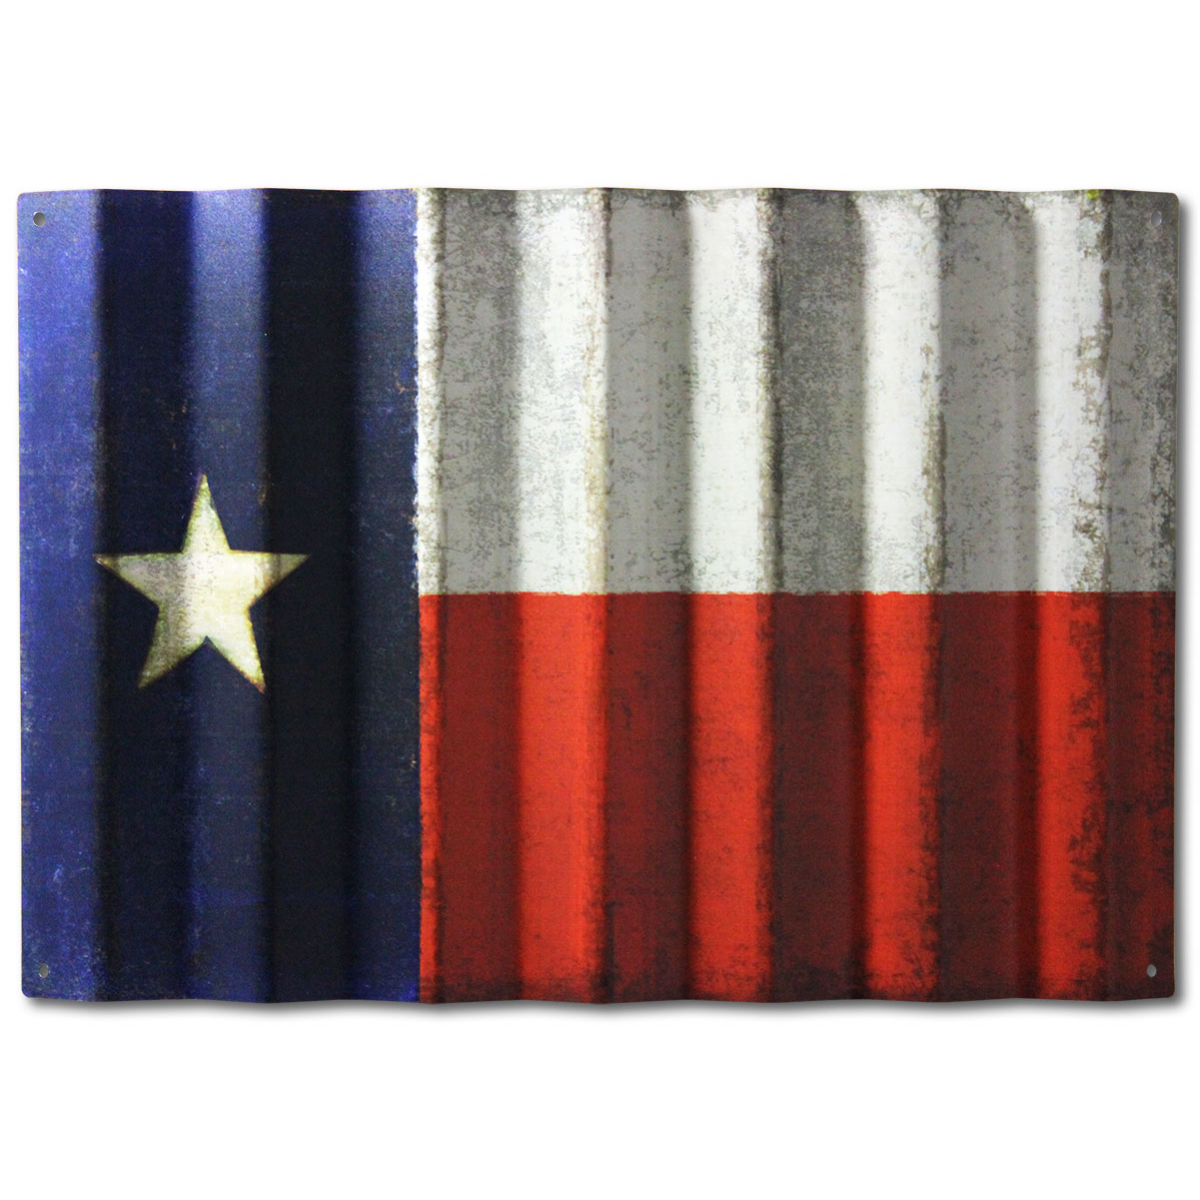 Vintage Texas Flag On Corrugated Metal Corrugated Metal Flag Art Flag